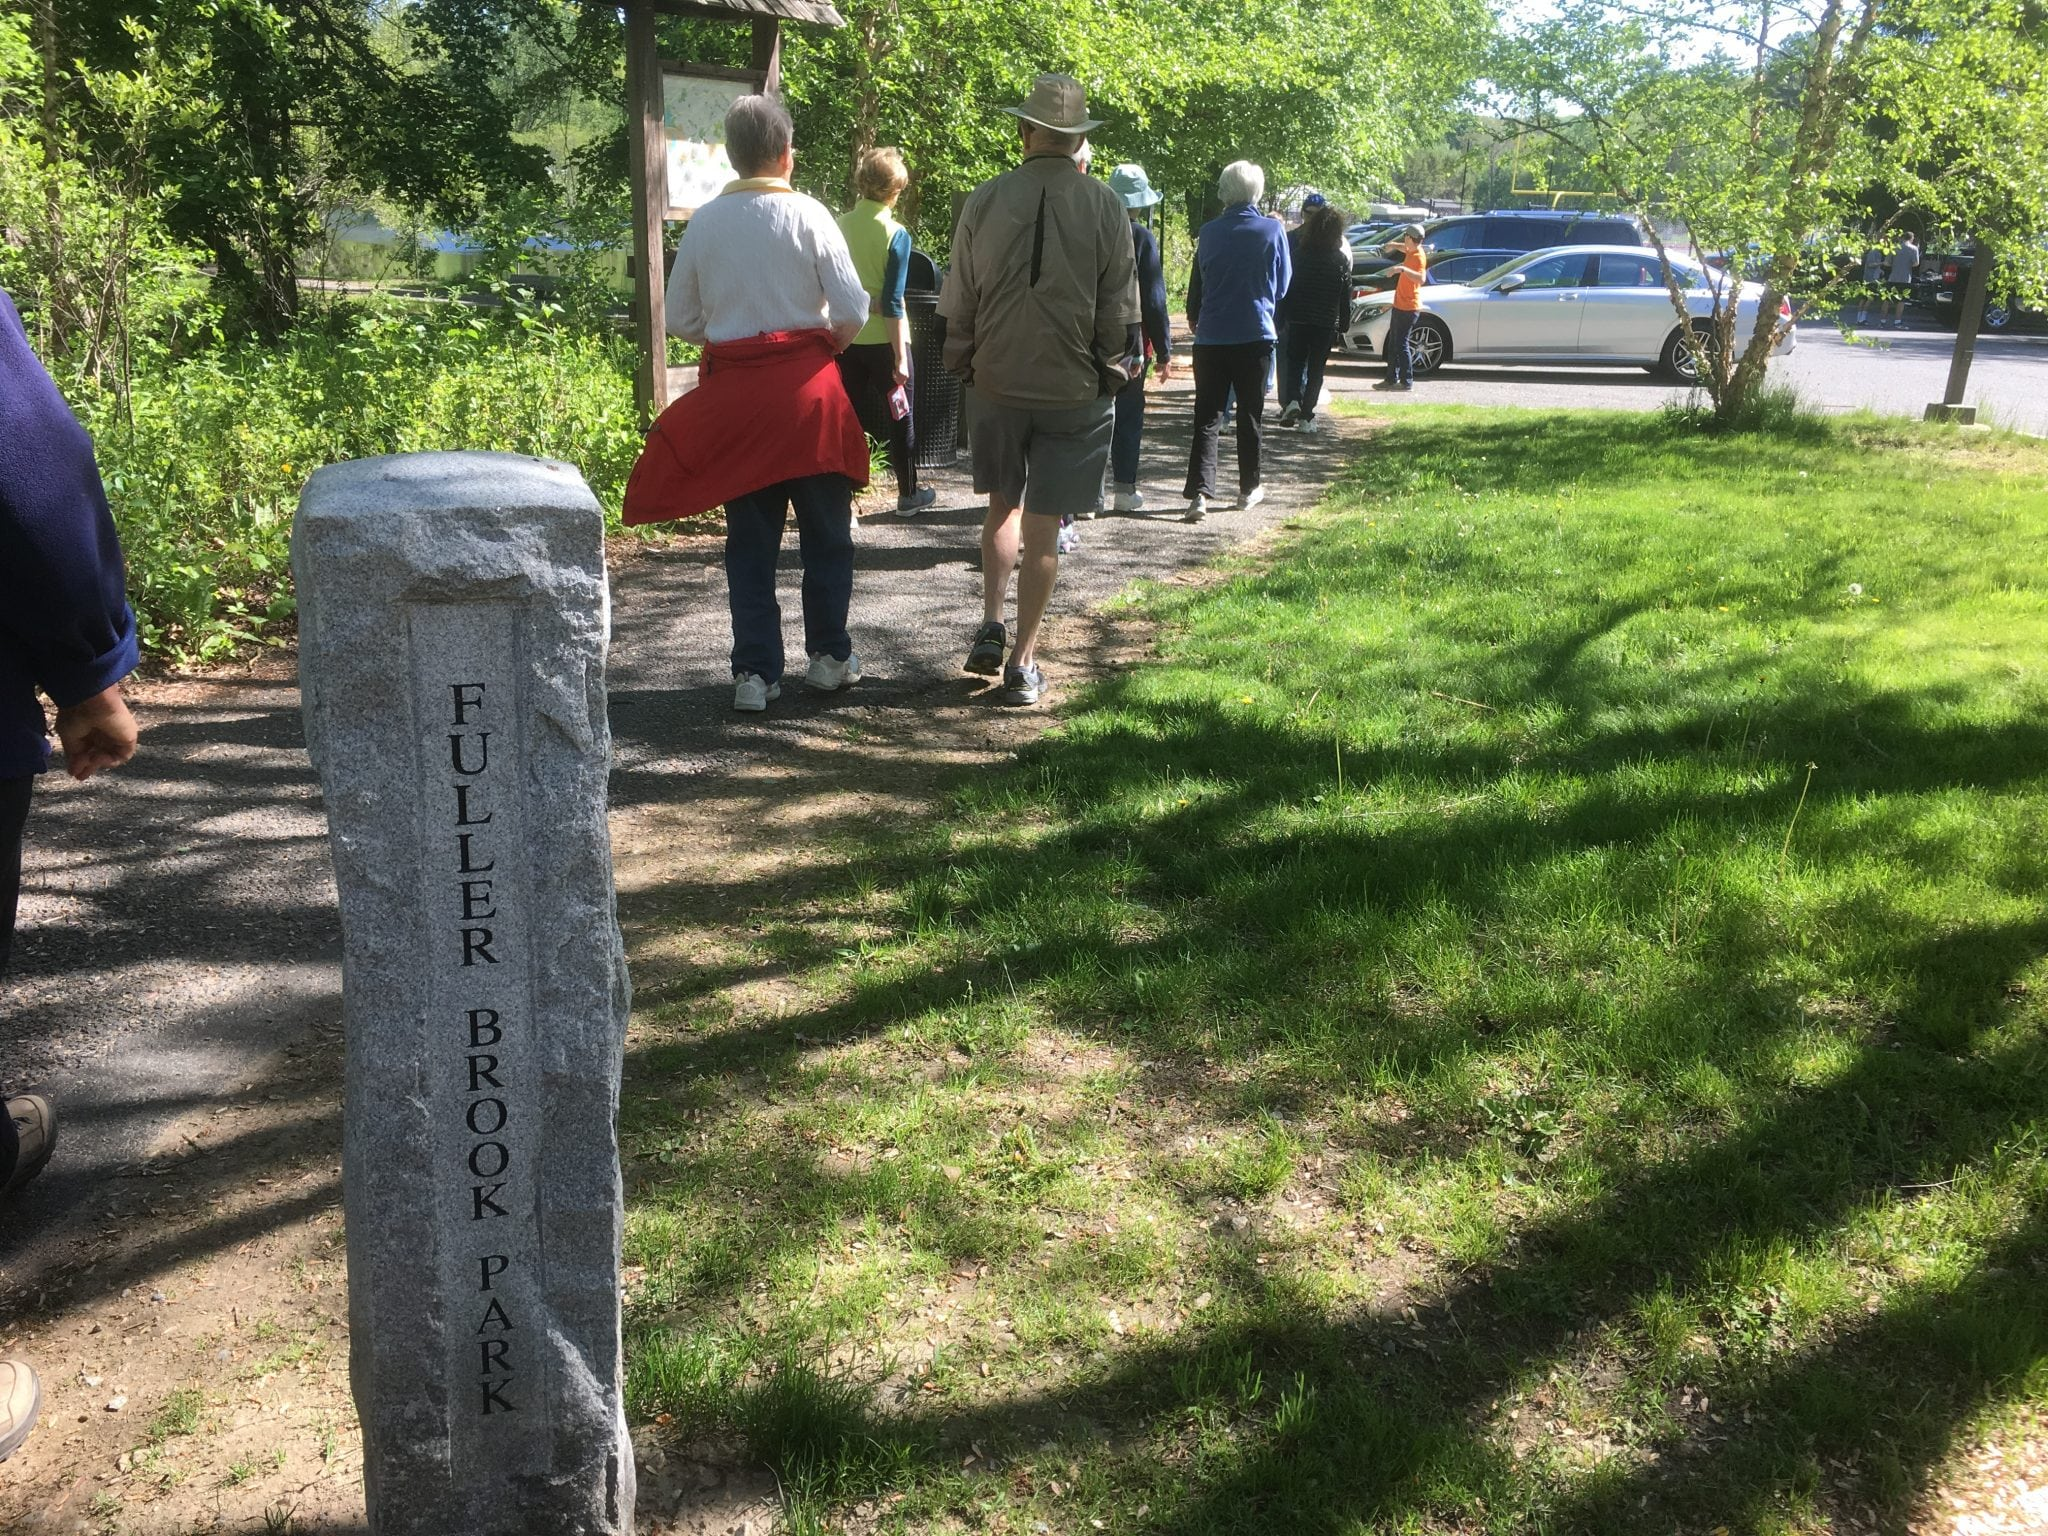 Wellesley Trails Committee-led walk of Fuller Brook Park's Brook Path